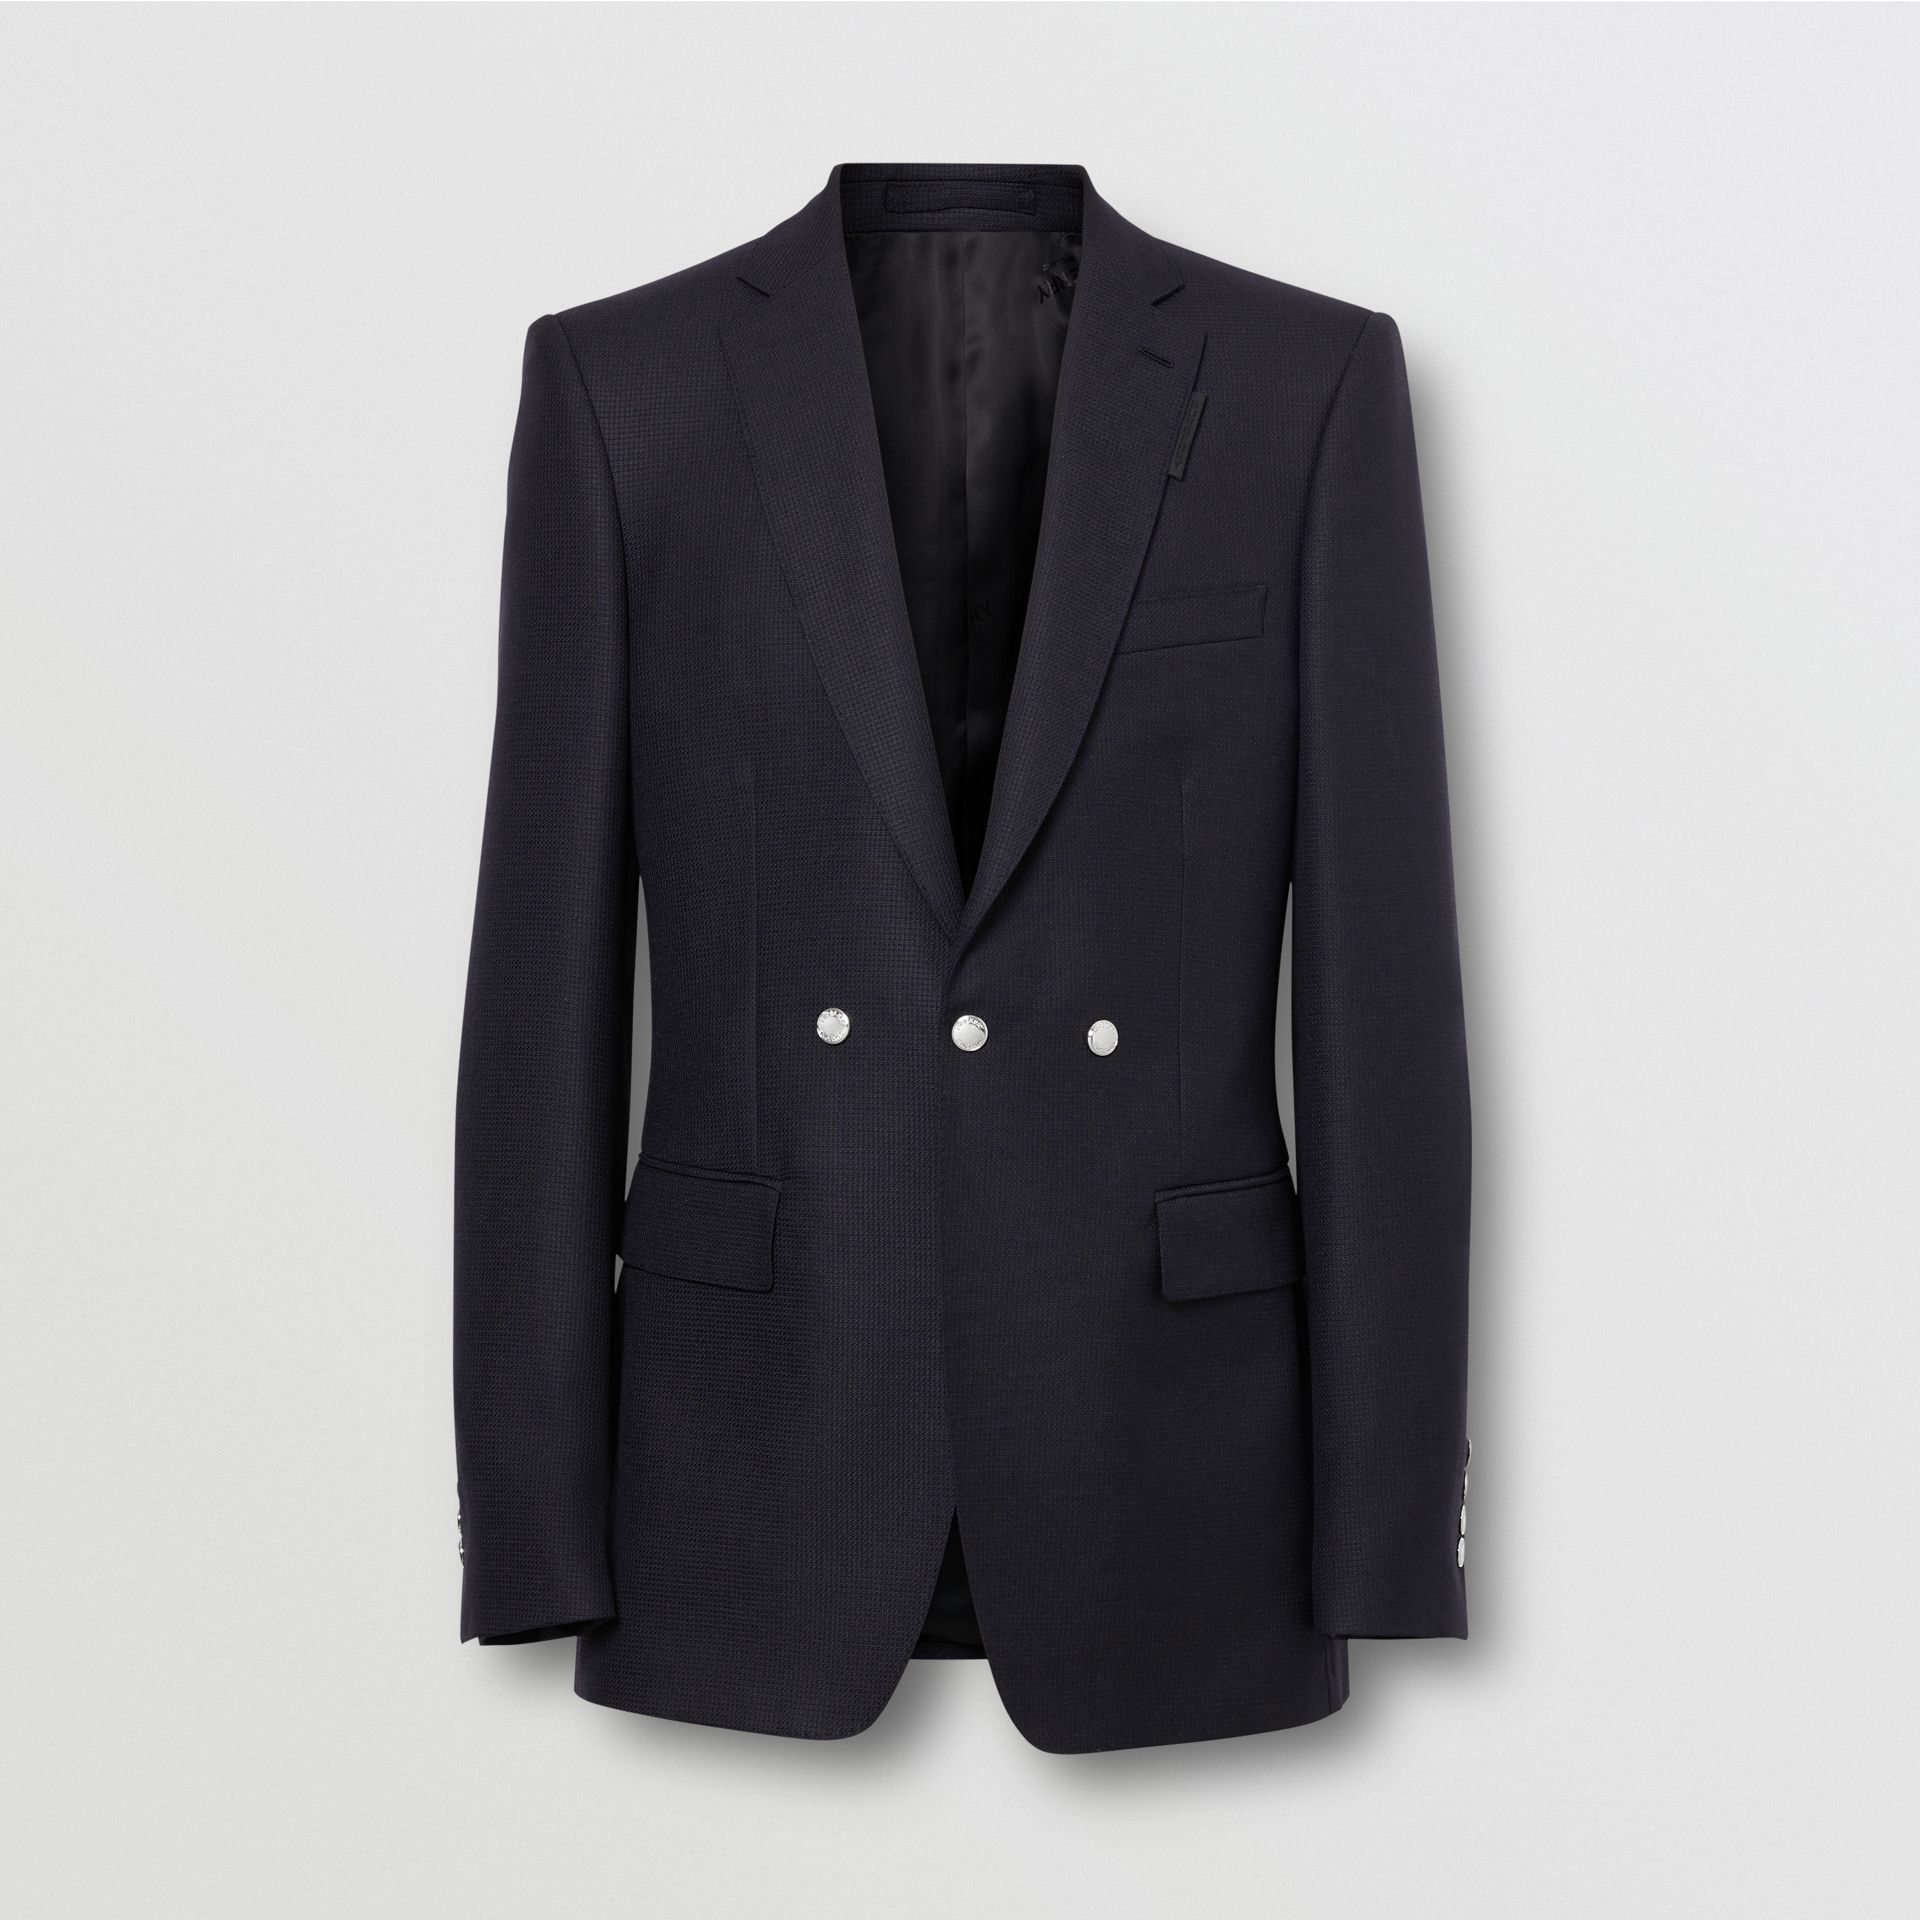 English Fit Triple Stud Wool Mohair Tailored Jacket in Midnight Blue - Men | Burberry - gallery image 3